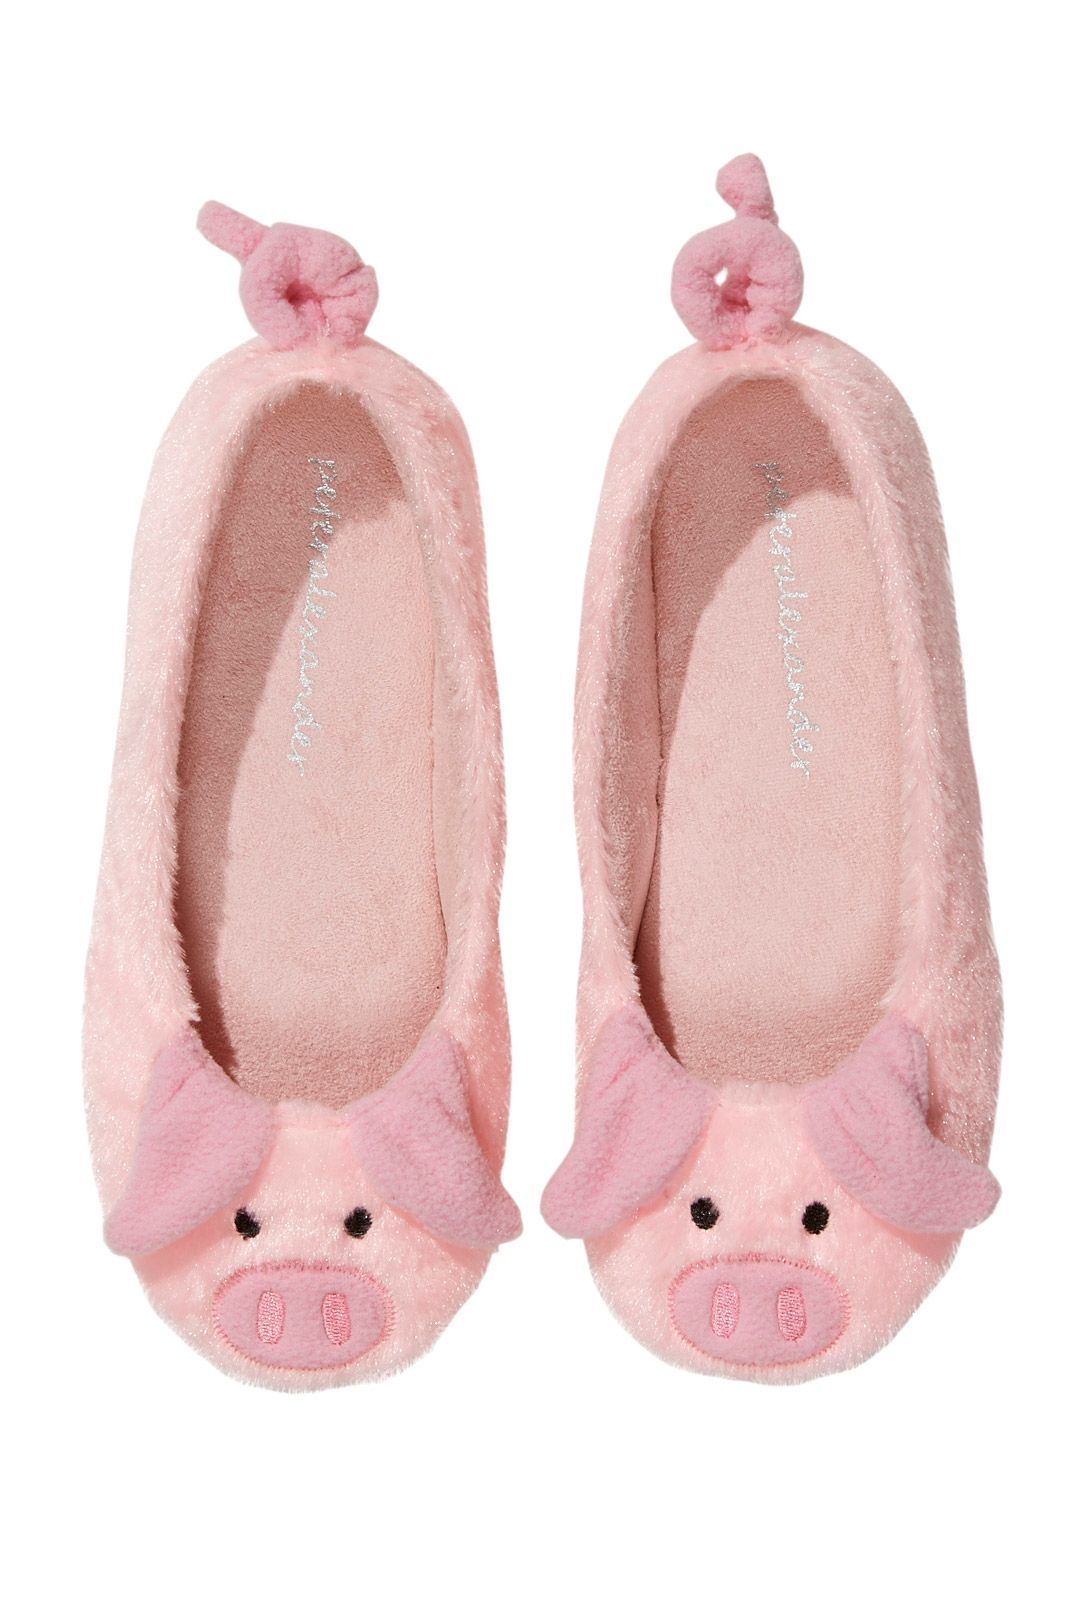 Piggy Slippers From Peter Alexander The Curly Tails Are